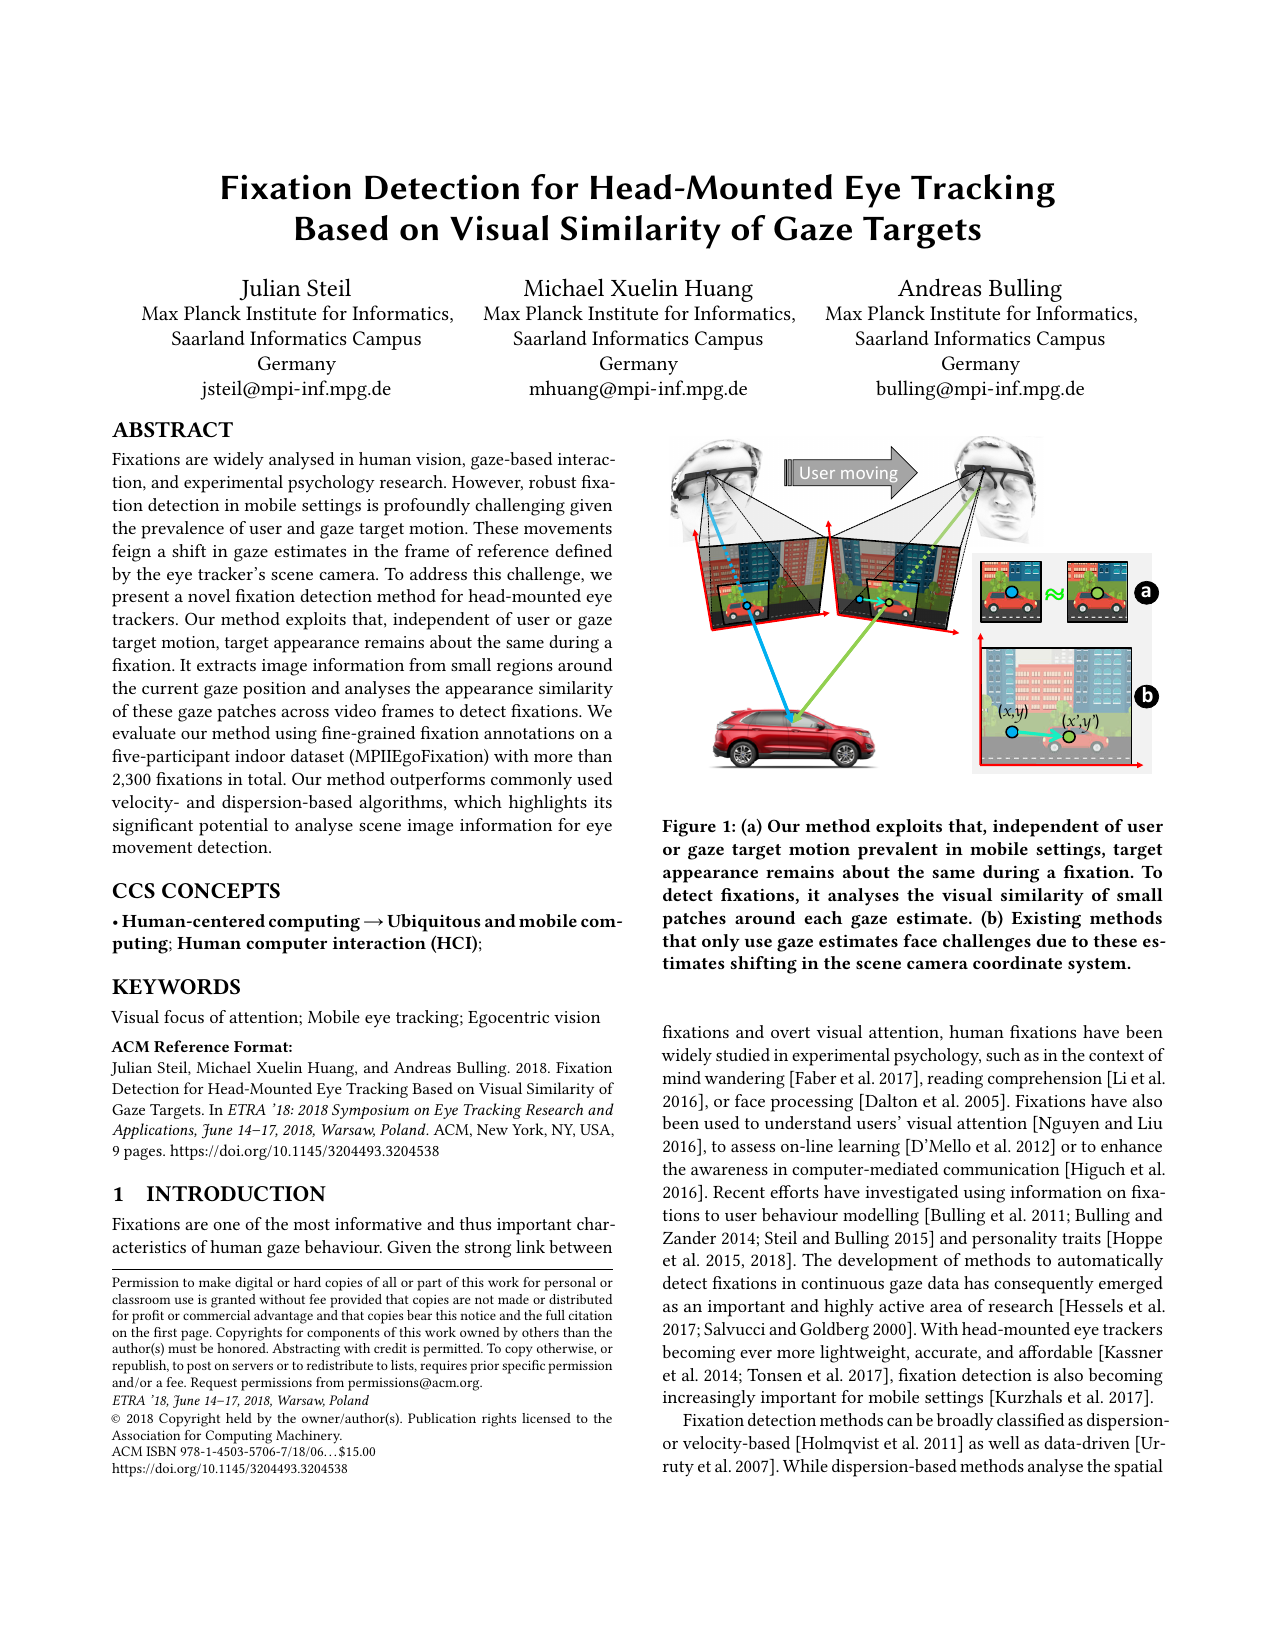 Fixation Detection for Head-Mounted Eye Tracking Based on Visual Similarity of Gaze Targets